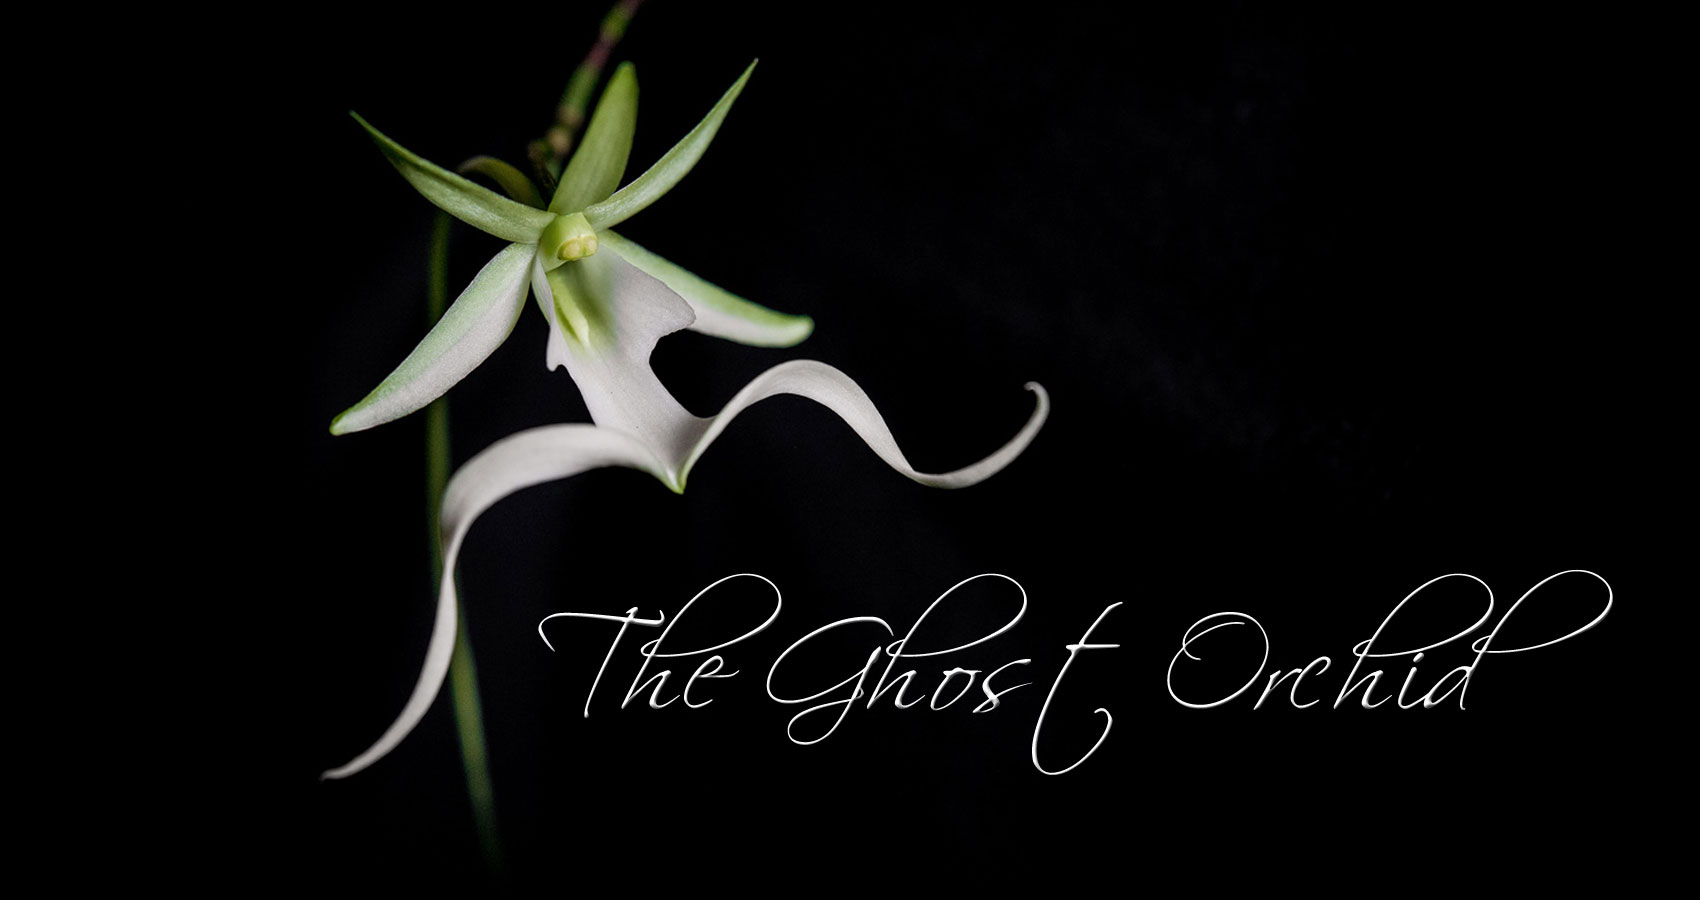 The Ghost Orchid by Leanne Yeoman at Spillwords.com